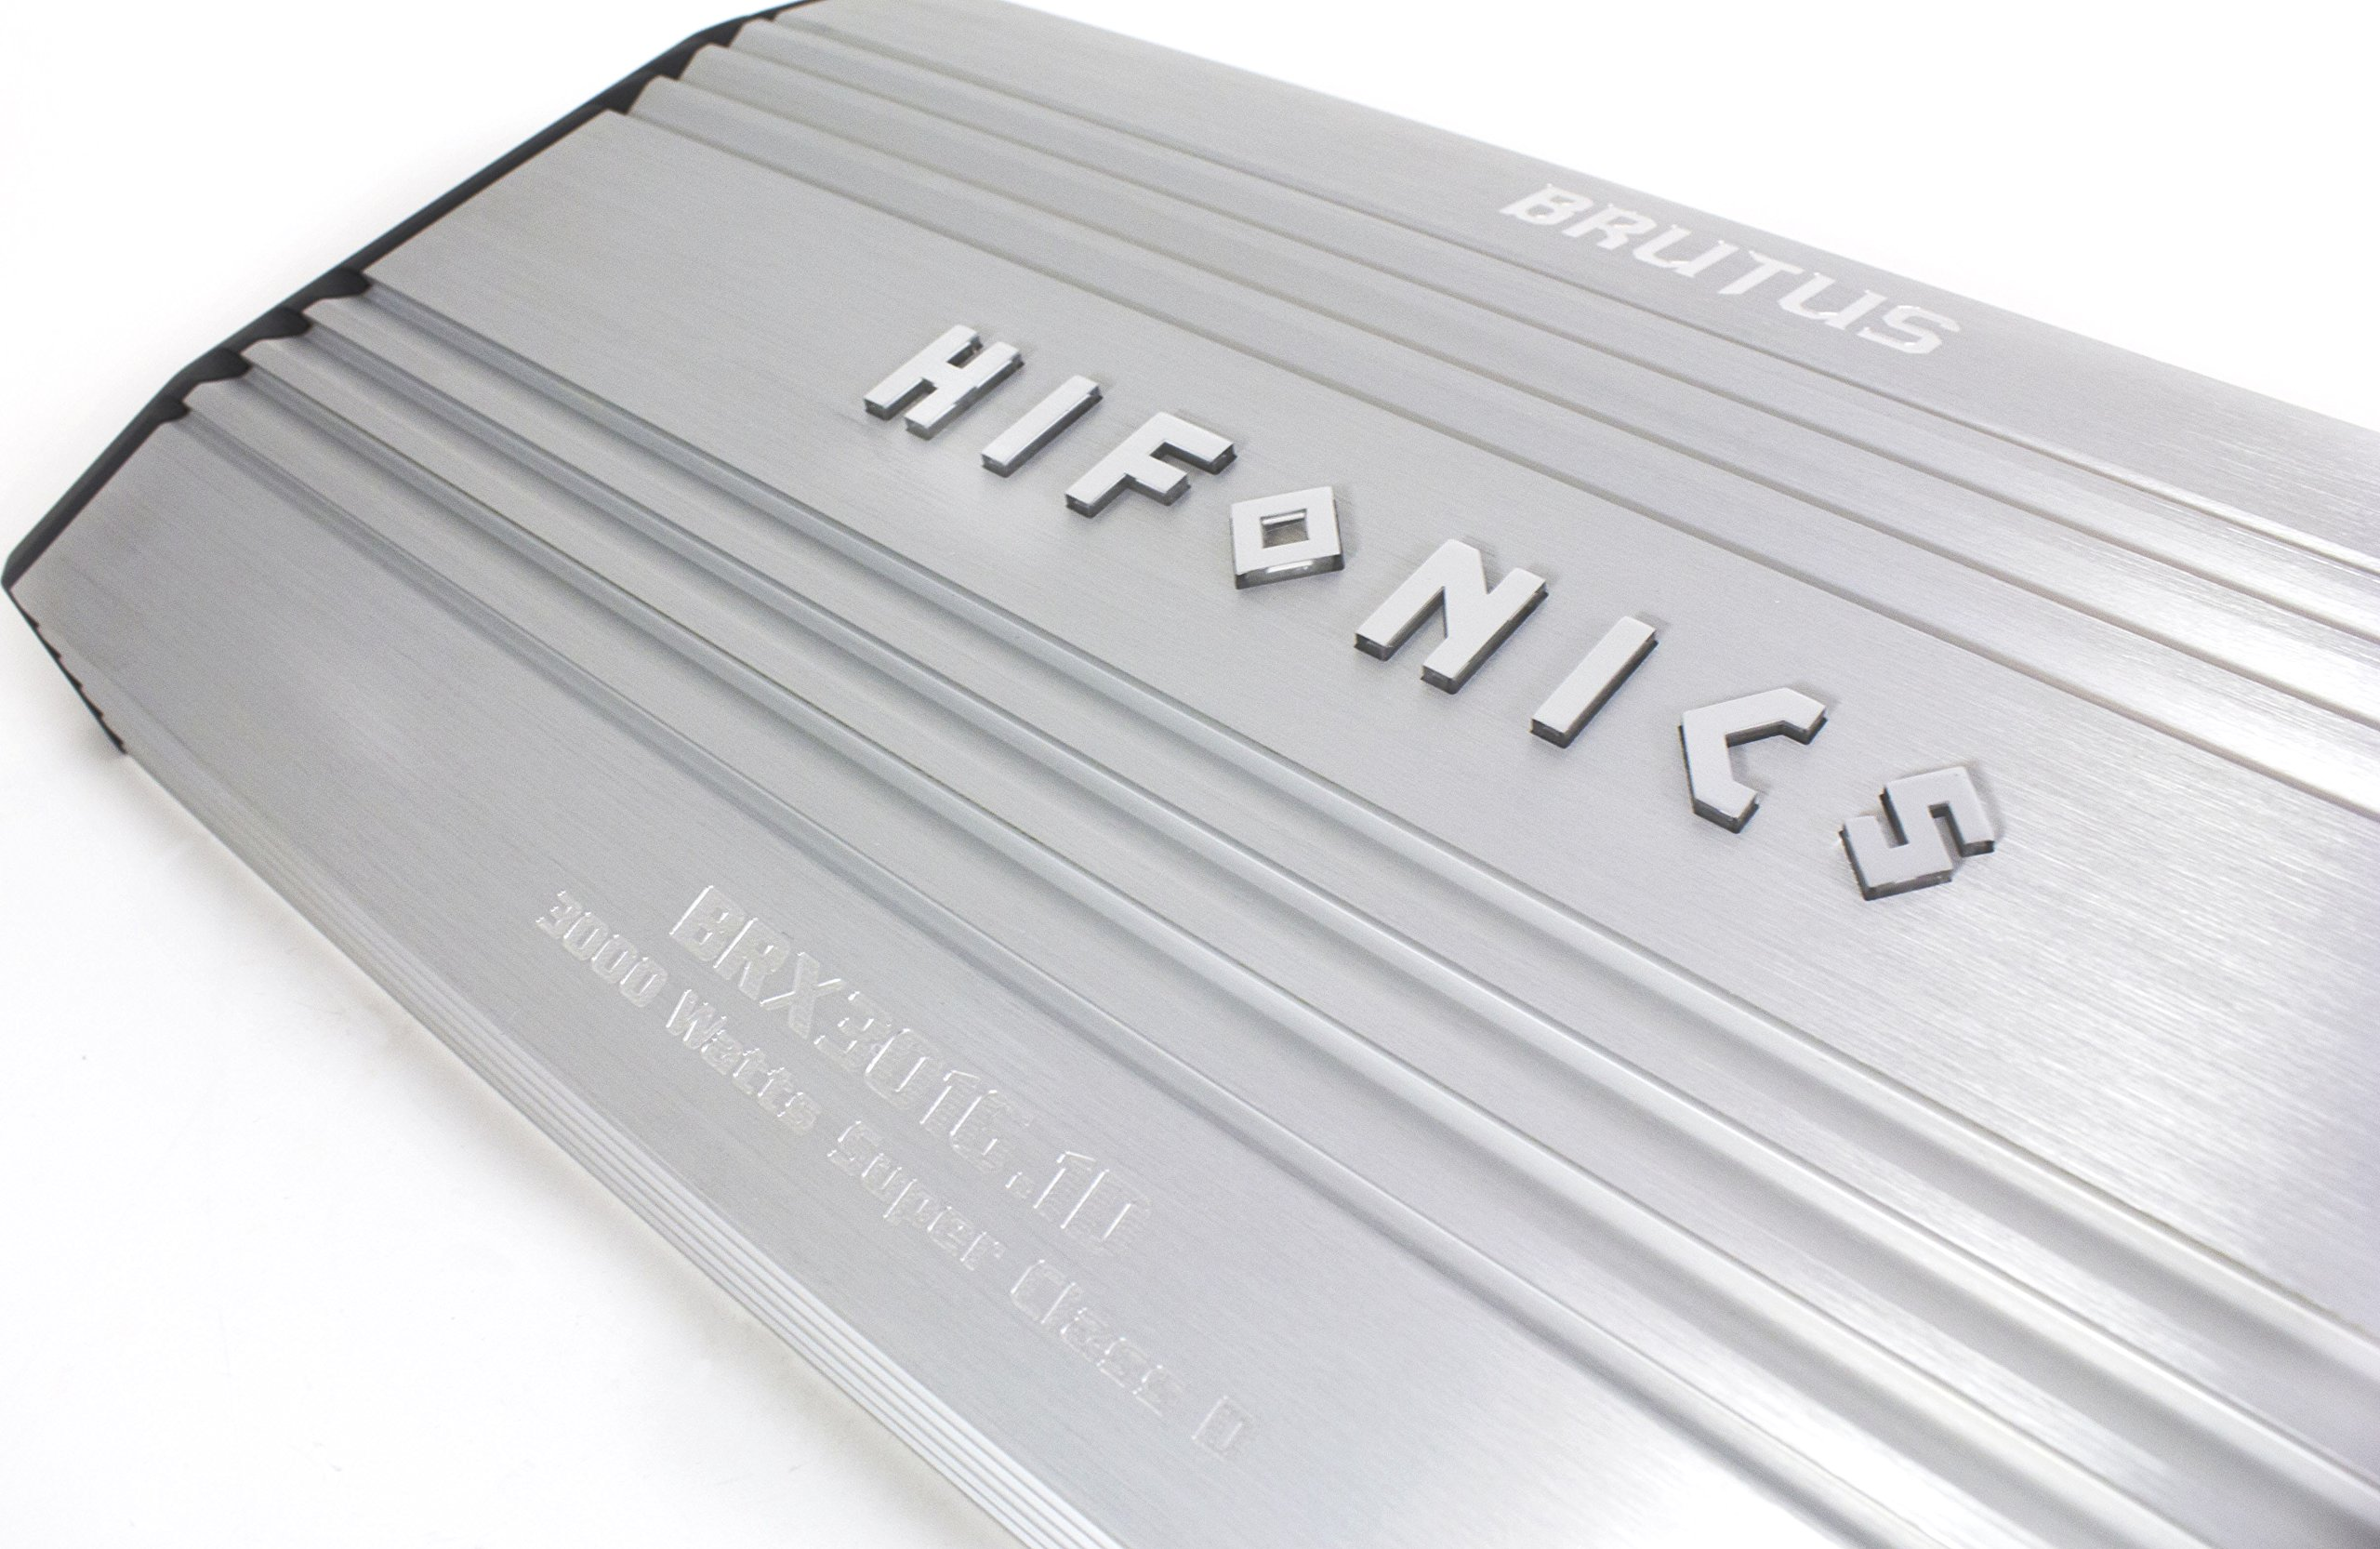 Hifonics BRX1516.1D Brutus Mono Super D-Class Subwoofer Amplifier, 1500-Watt by Hifonics